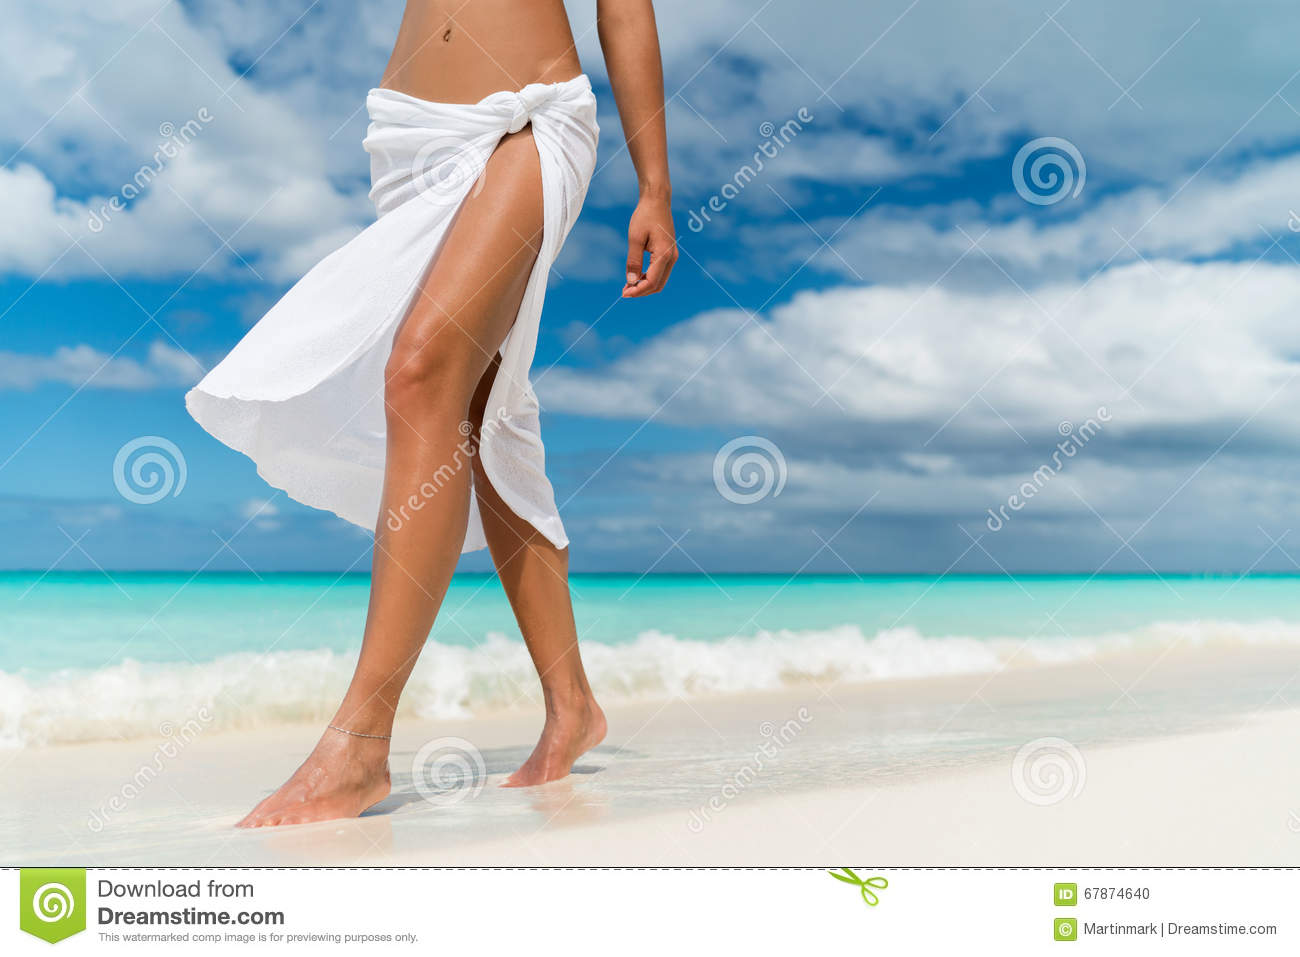 White pareo woman legs walking on tropical beach vacation